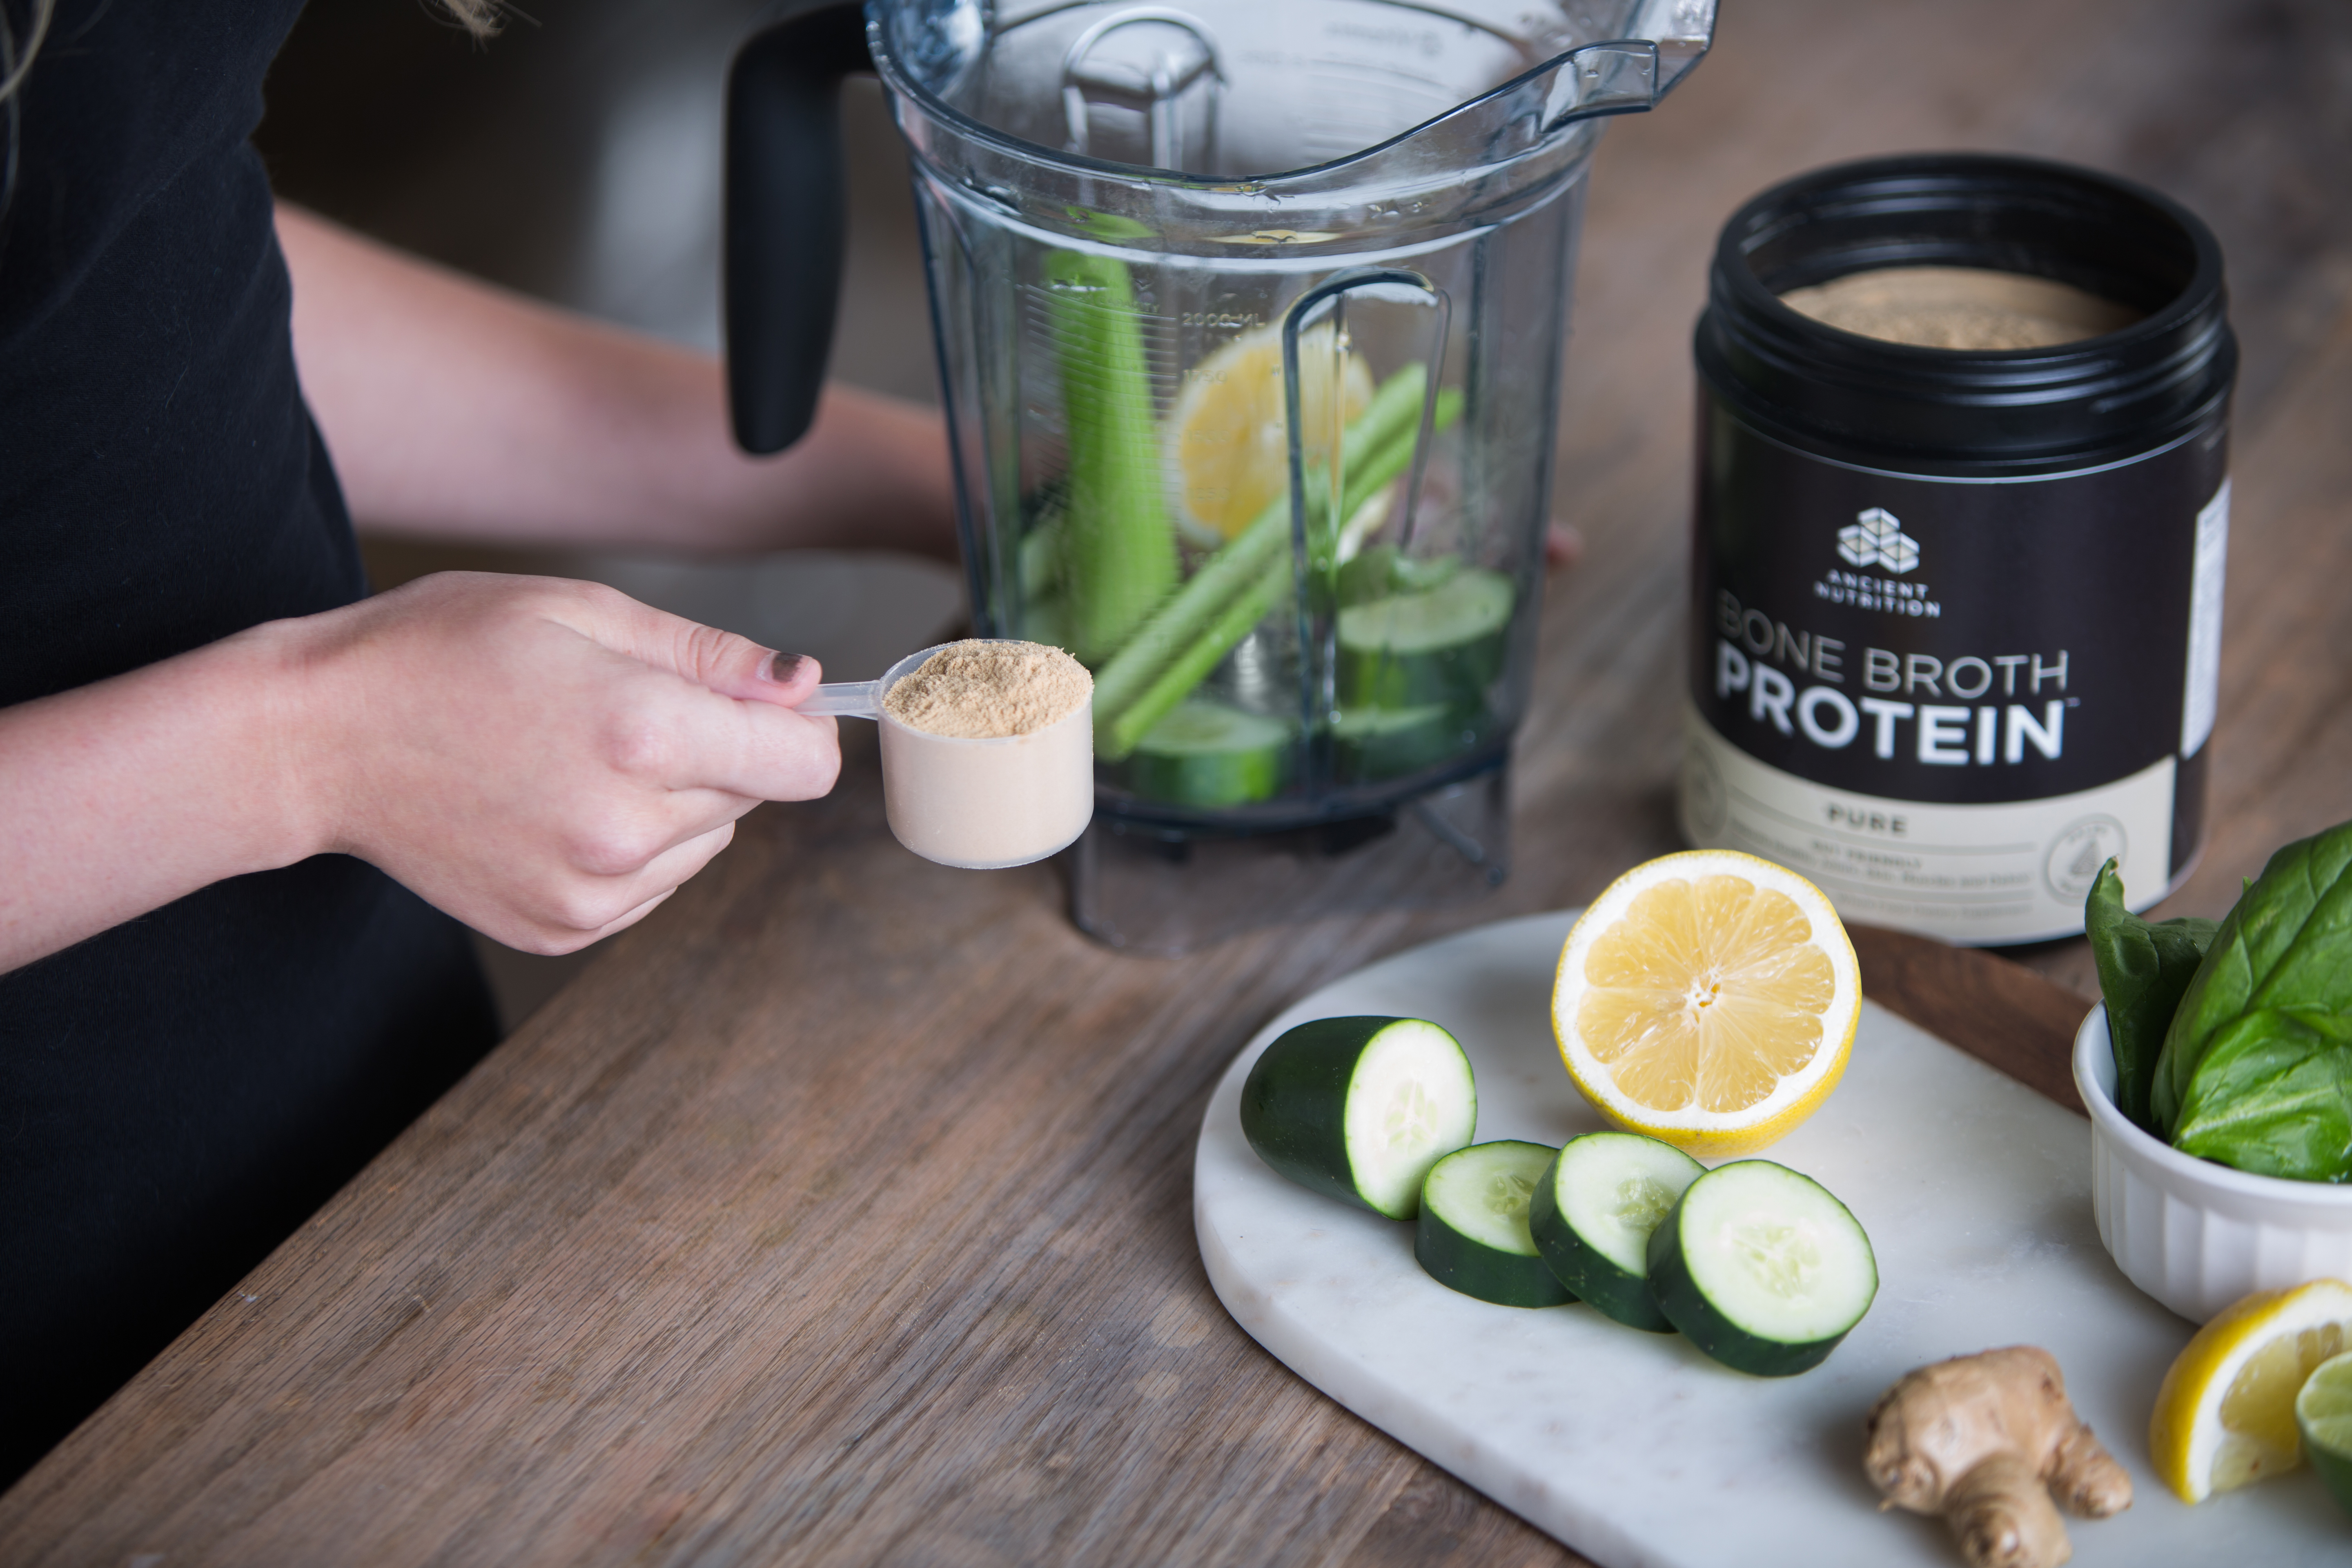 Bone broth supplement maker Ancient Nutrition has nabbed $103 million in funding.